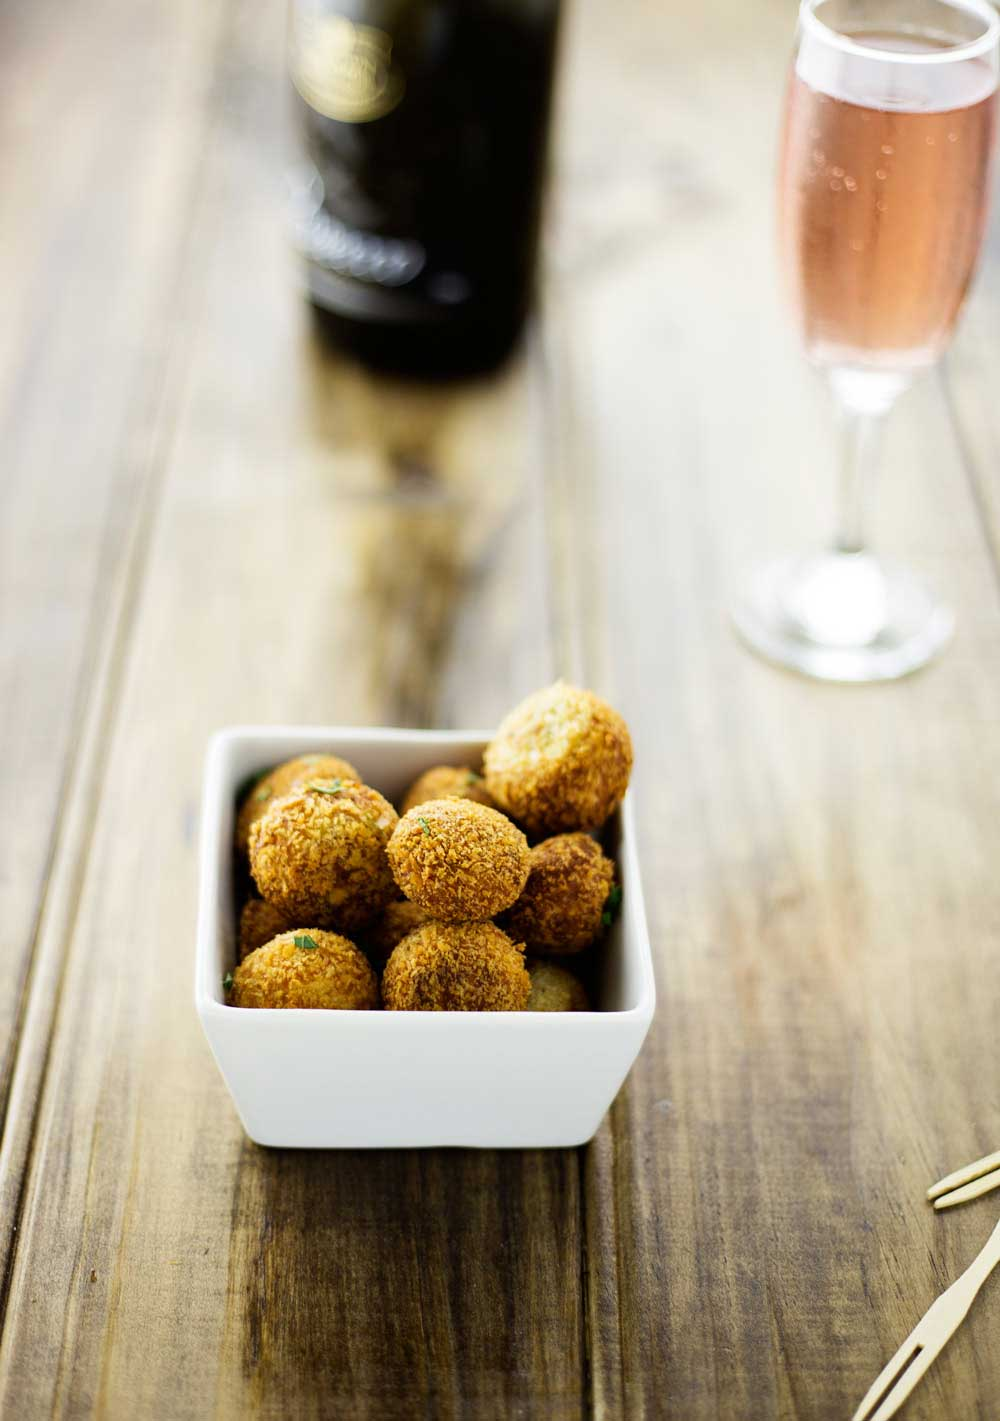 Roasted Chicken Croquettes. These balls are little crunchy bites that taste like a roast chicken dinner! There is the crispy salty edge, a soft juicy sage spiked centre. Life is short, deep fry your croquettes, buy the shoes, say I love you when you feel it and always order an appetiser!